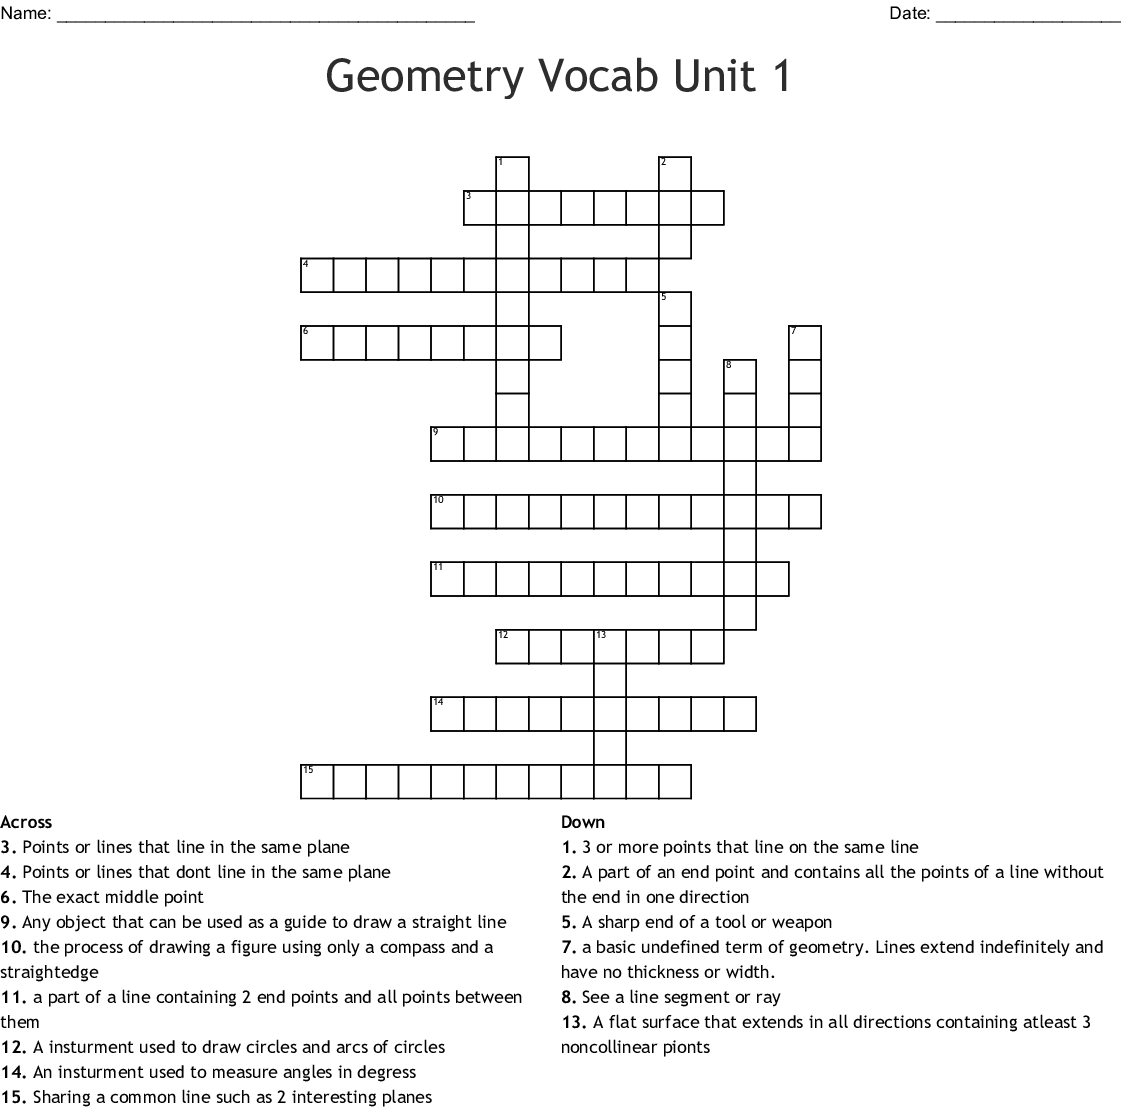 Geometry Vocab Unit 1 Crossword